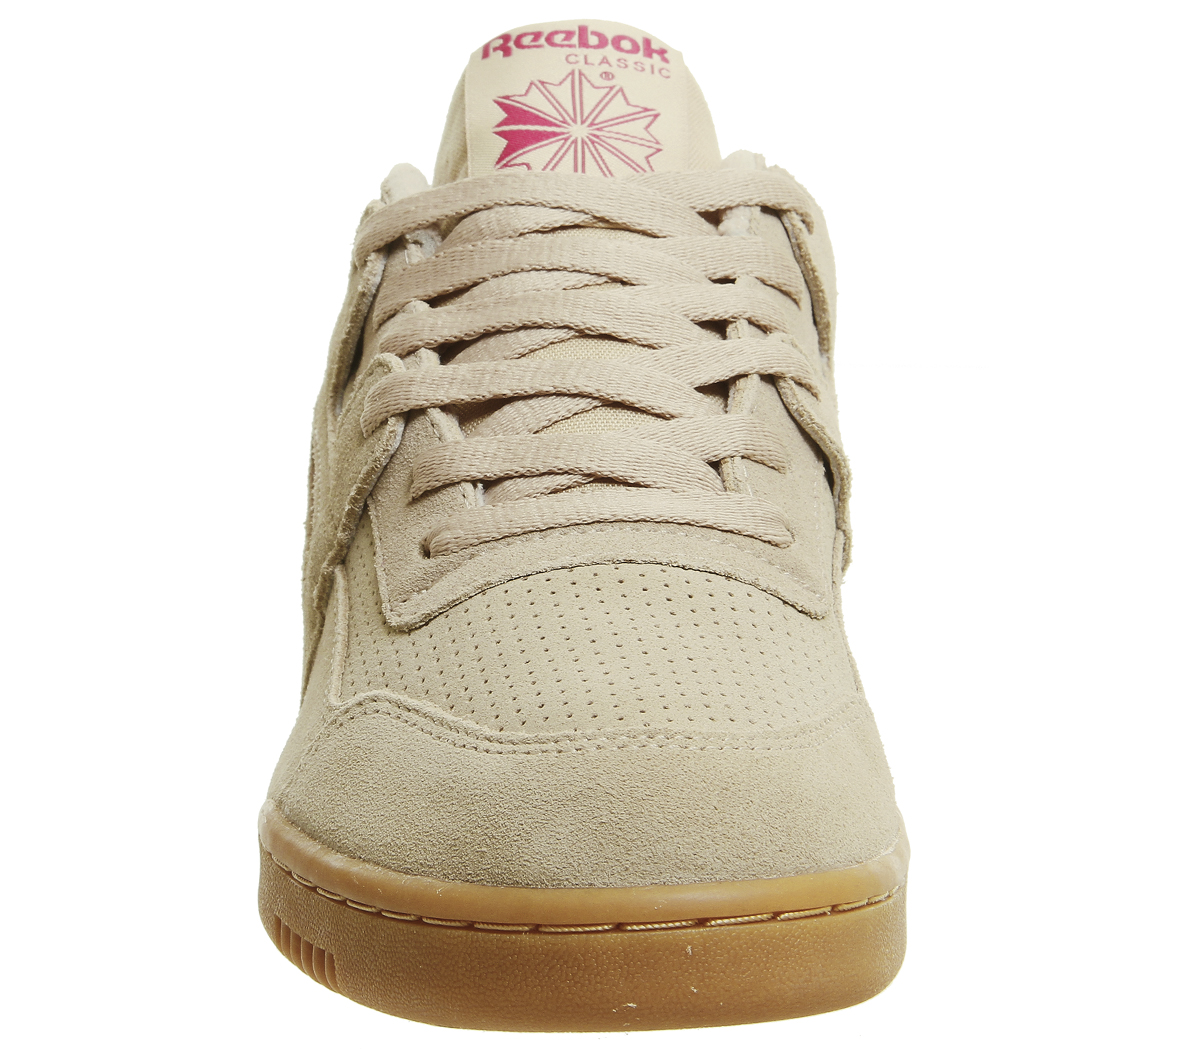 99a46164b8527 Sentinel Reebok Workout Plus Trainers Sahara Pink White Gum Trainers Shoes